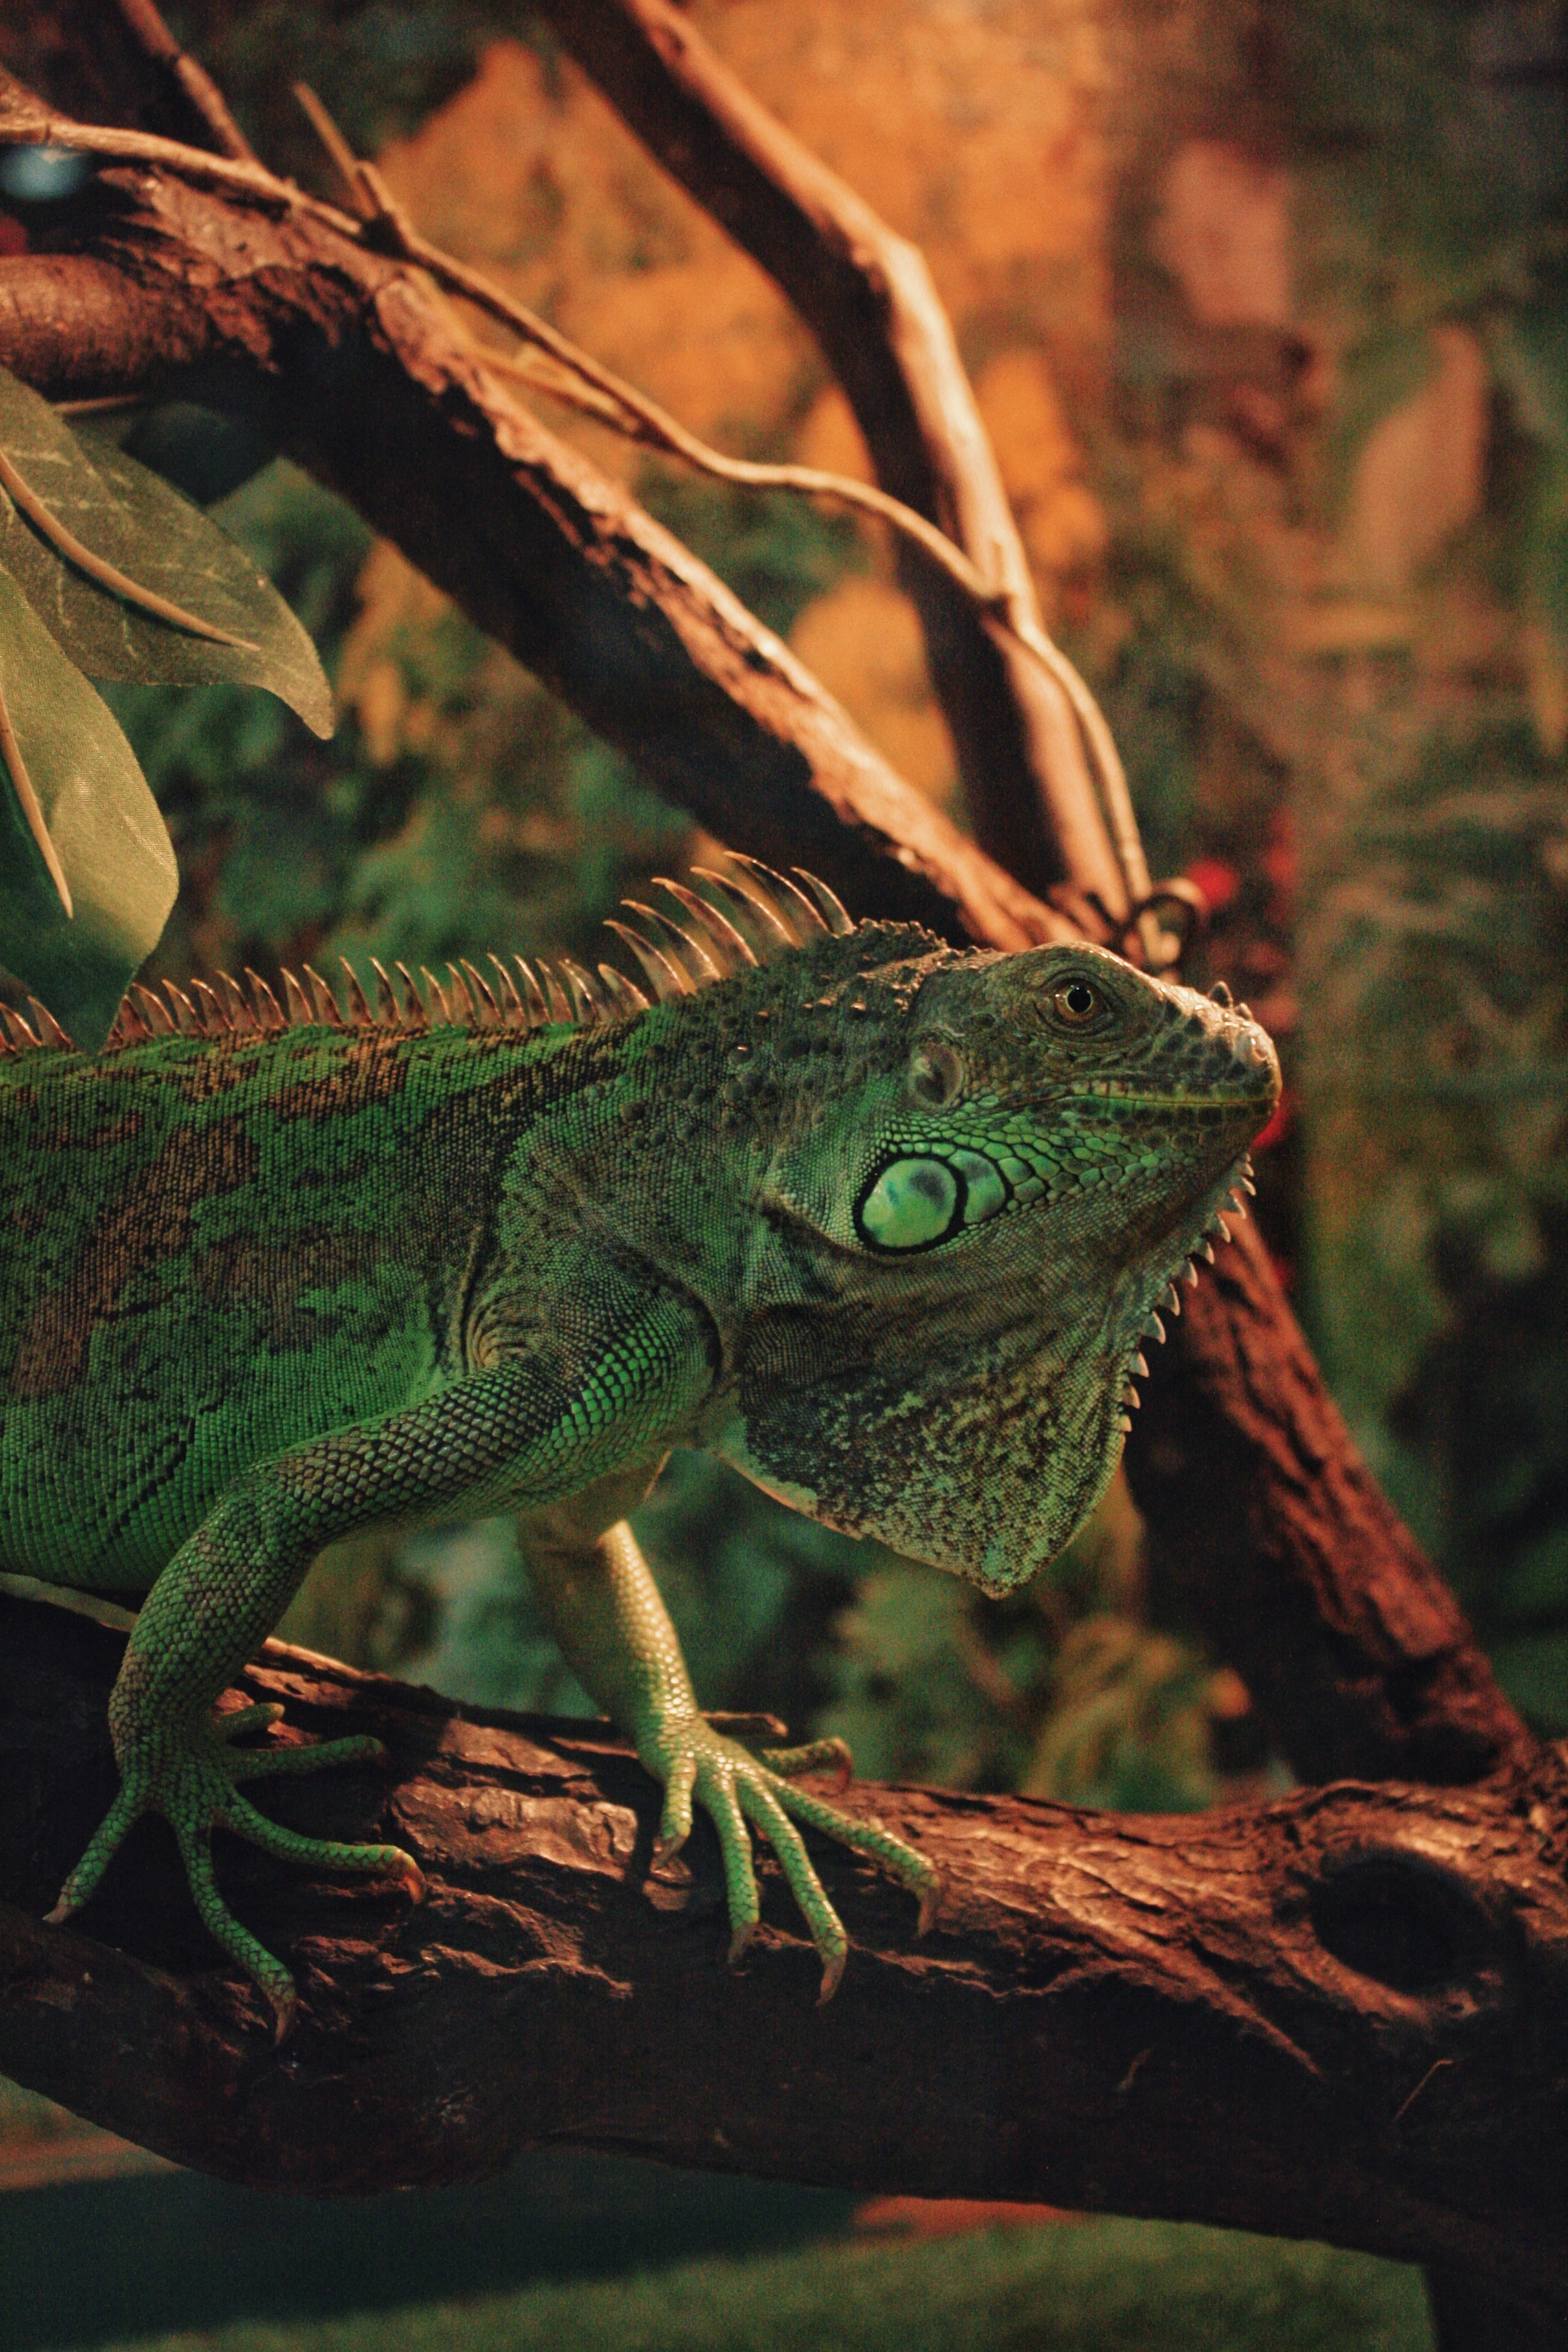 93343 download wallpaper Animals, Iguana, Reptile, Scales, Scale, Animal screensavers and pictures for free